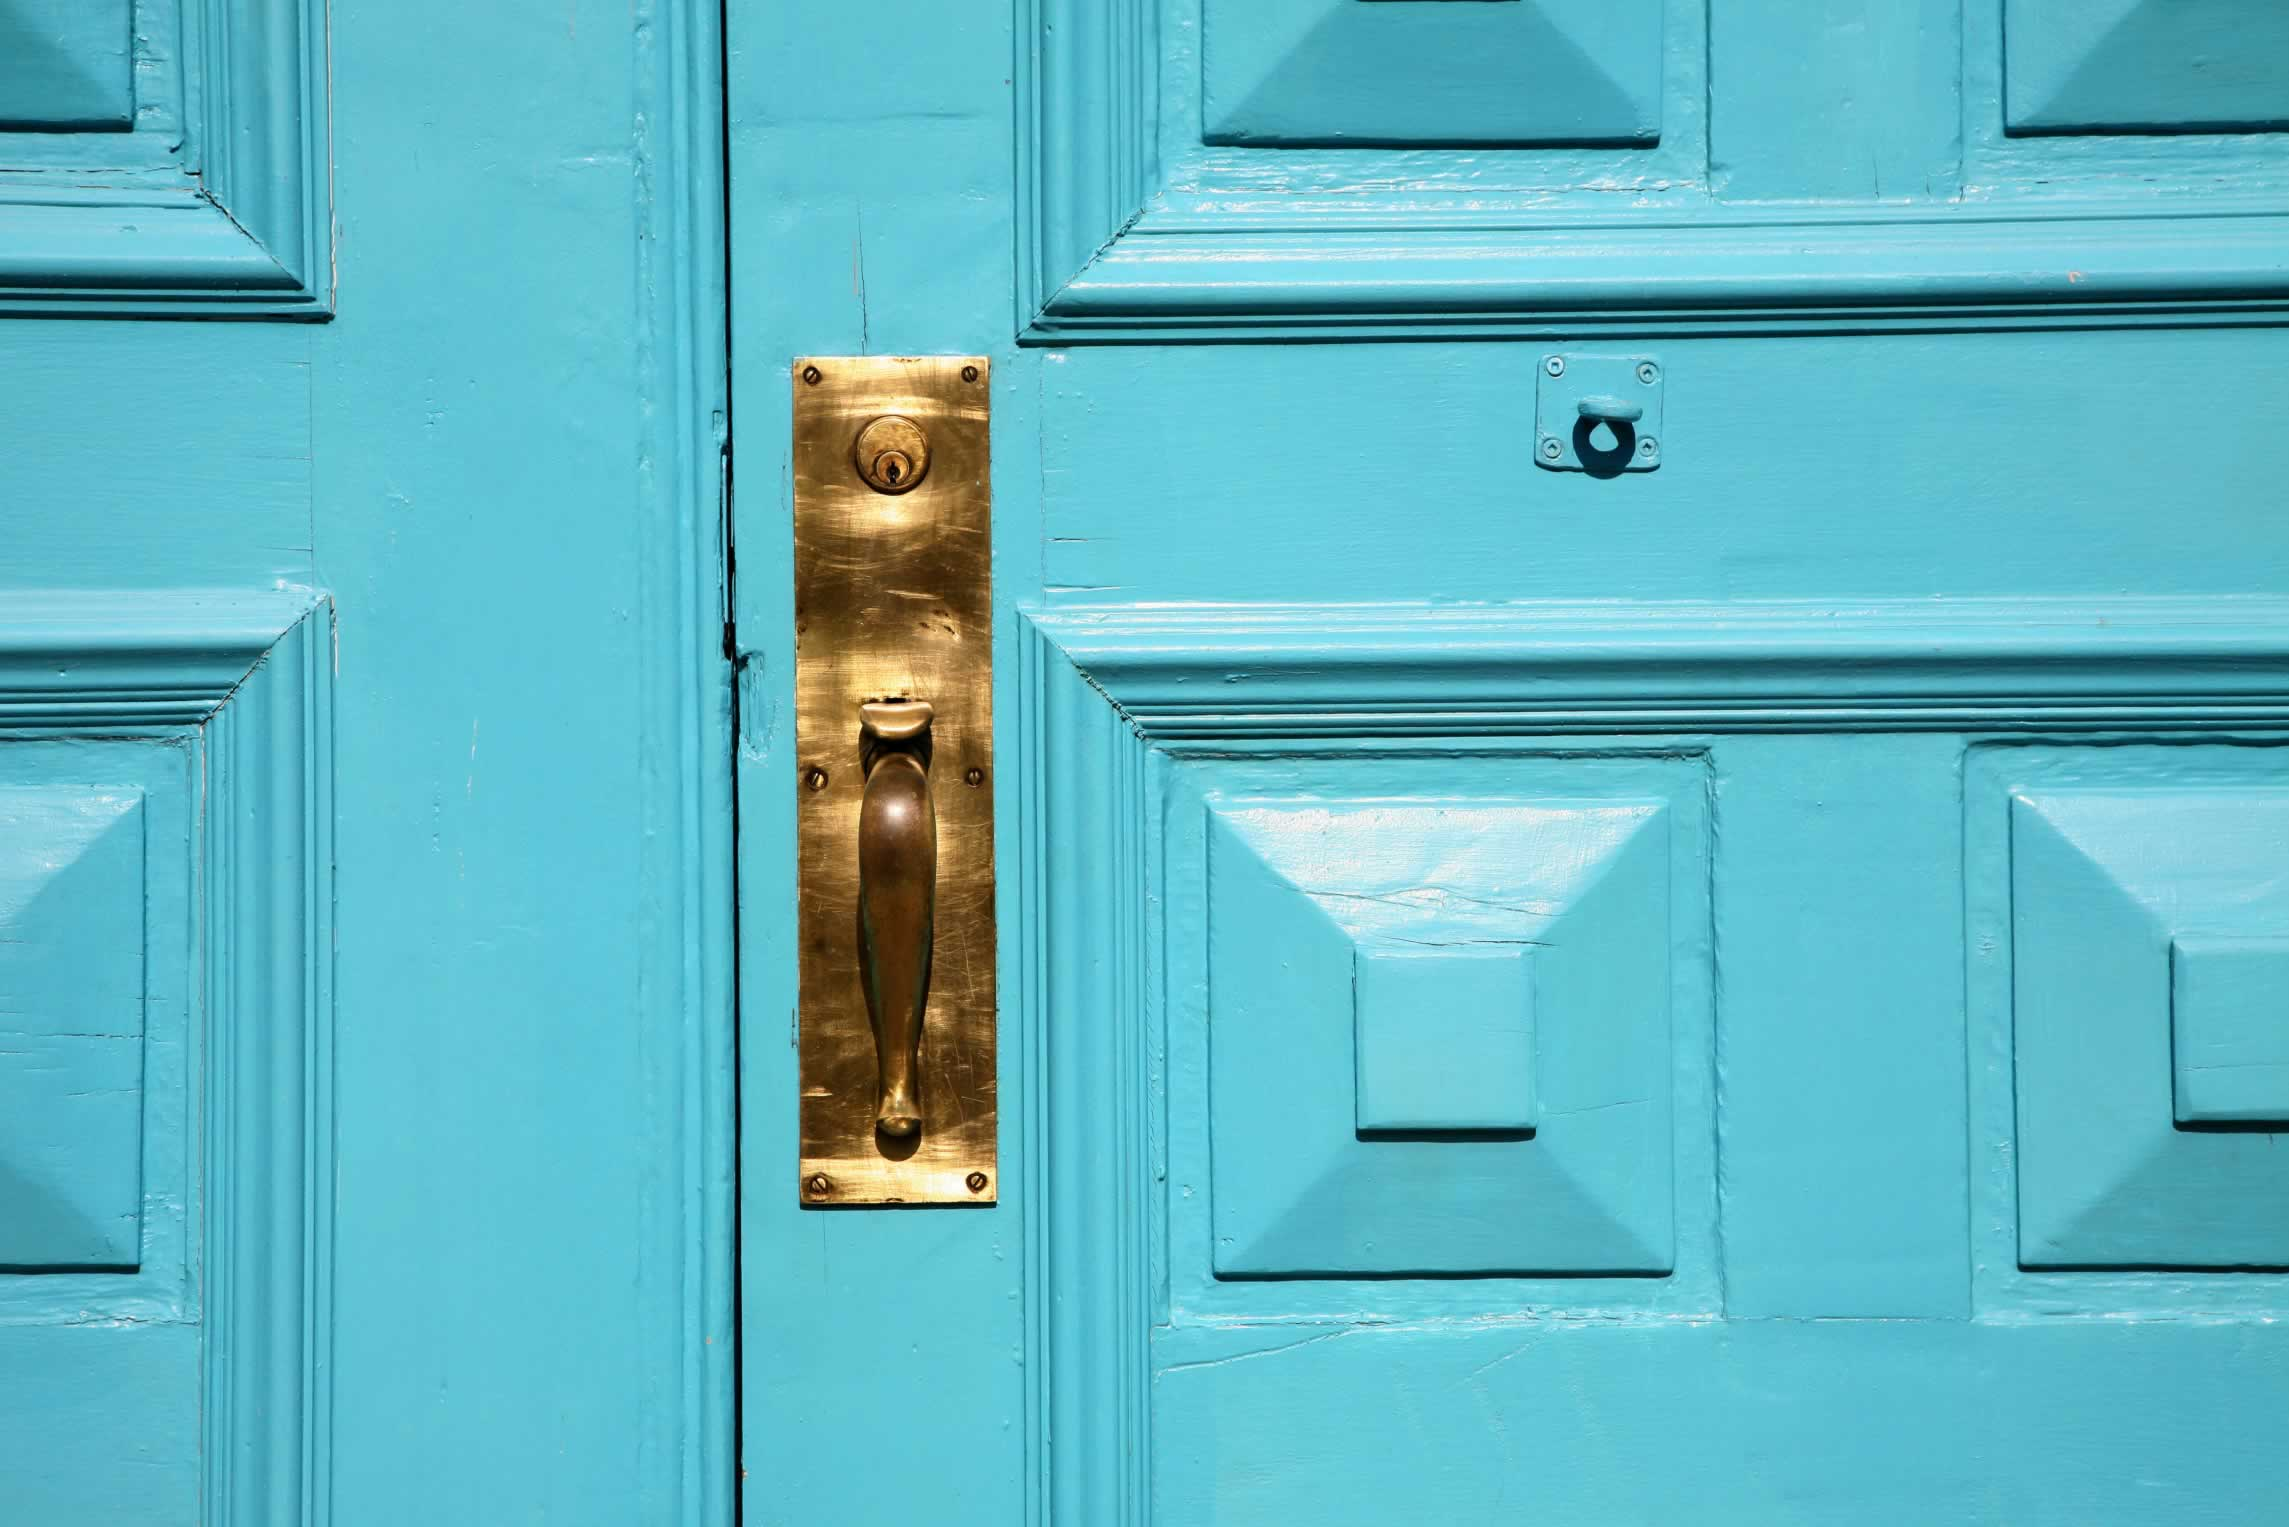 Turquoise Double Panel Doors with Bolection and Art Deco Details